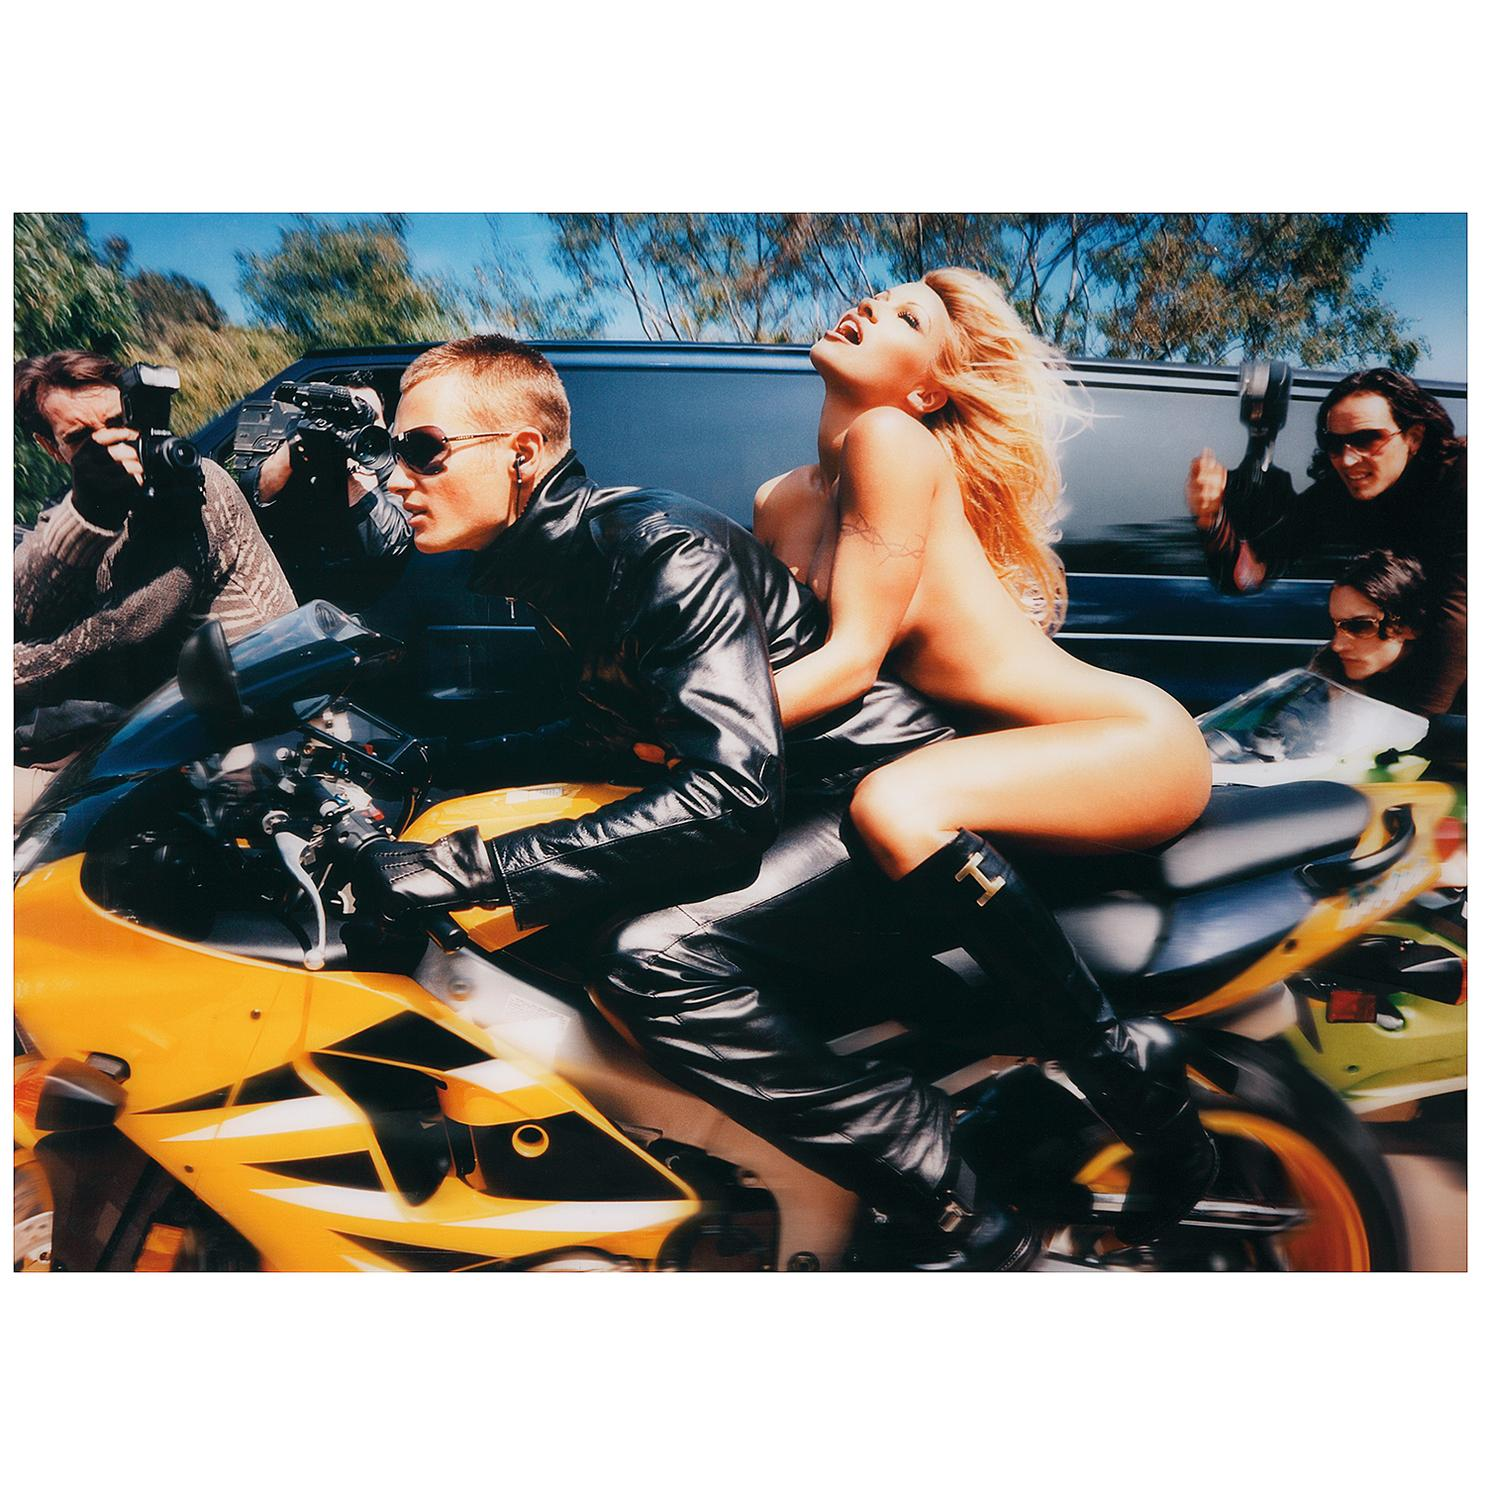 David LaChapelle-Pamela Anderson: Faster, Faster, I Am Almost There-2001